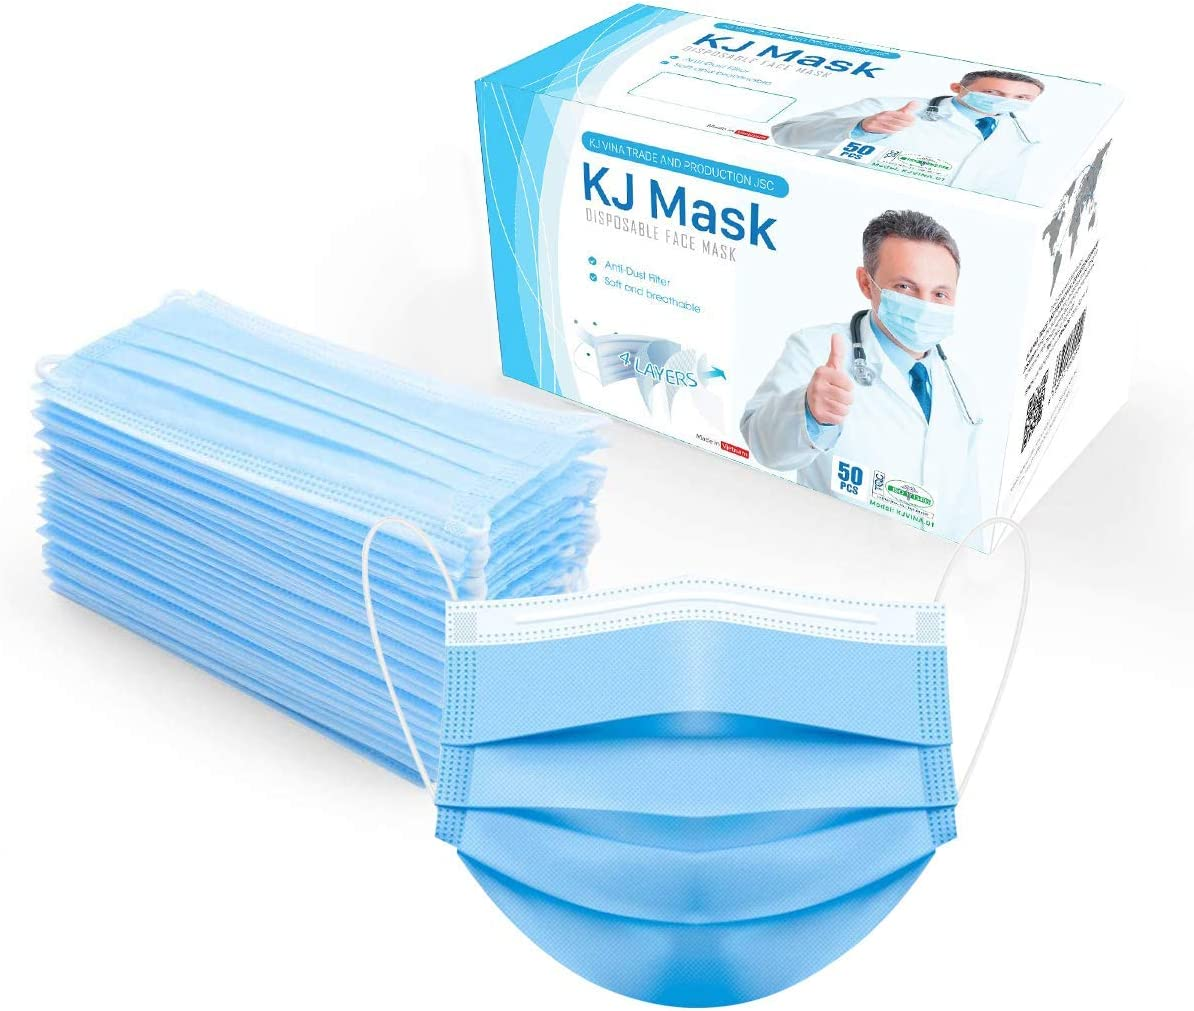 50 Pcs Disposable Face Mask 4 Layers- Safety Breathable Facemasks Blue with Elastic Ear Loop Comfortable for Blocking Dust Air Pollution Protection for Kids Teen Women Men